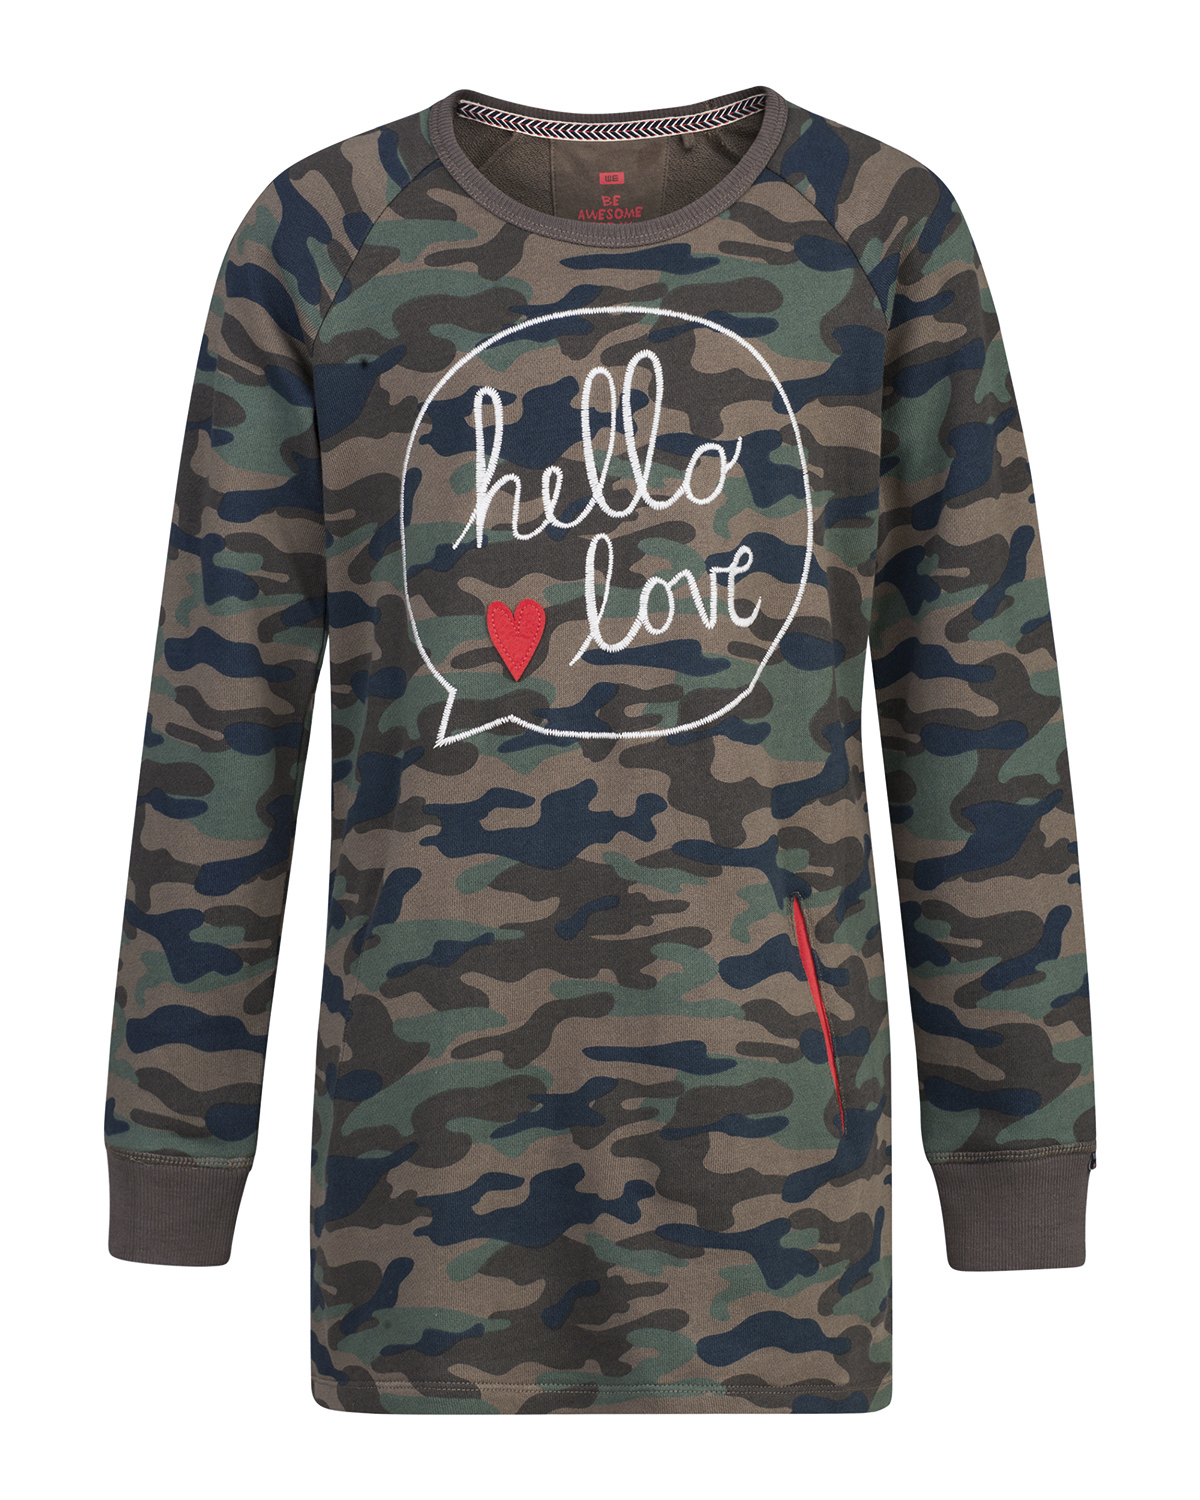 Meisjes camouflage sweater dress